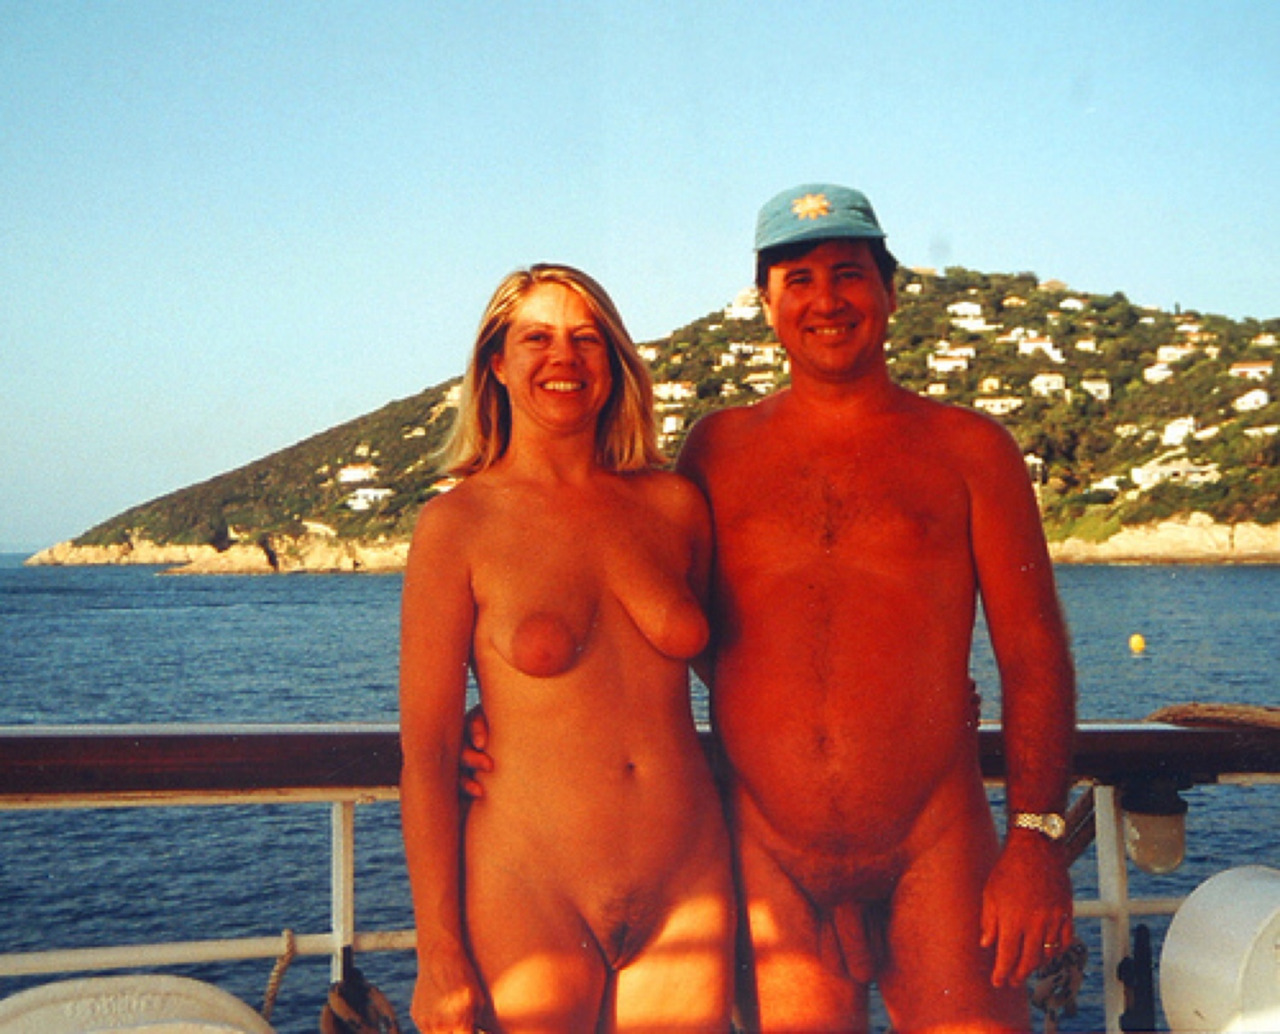 photo swinger Cruise